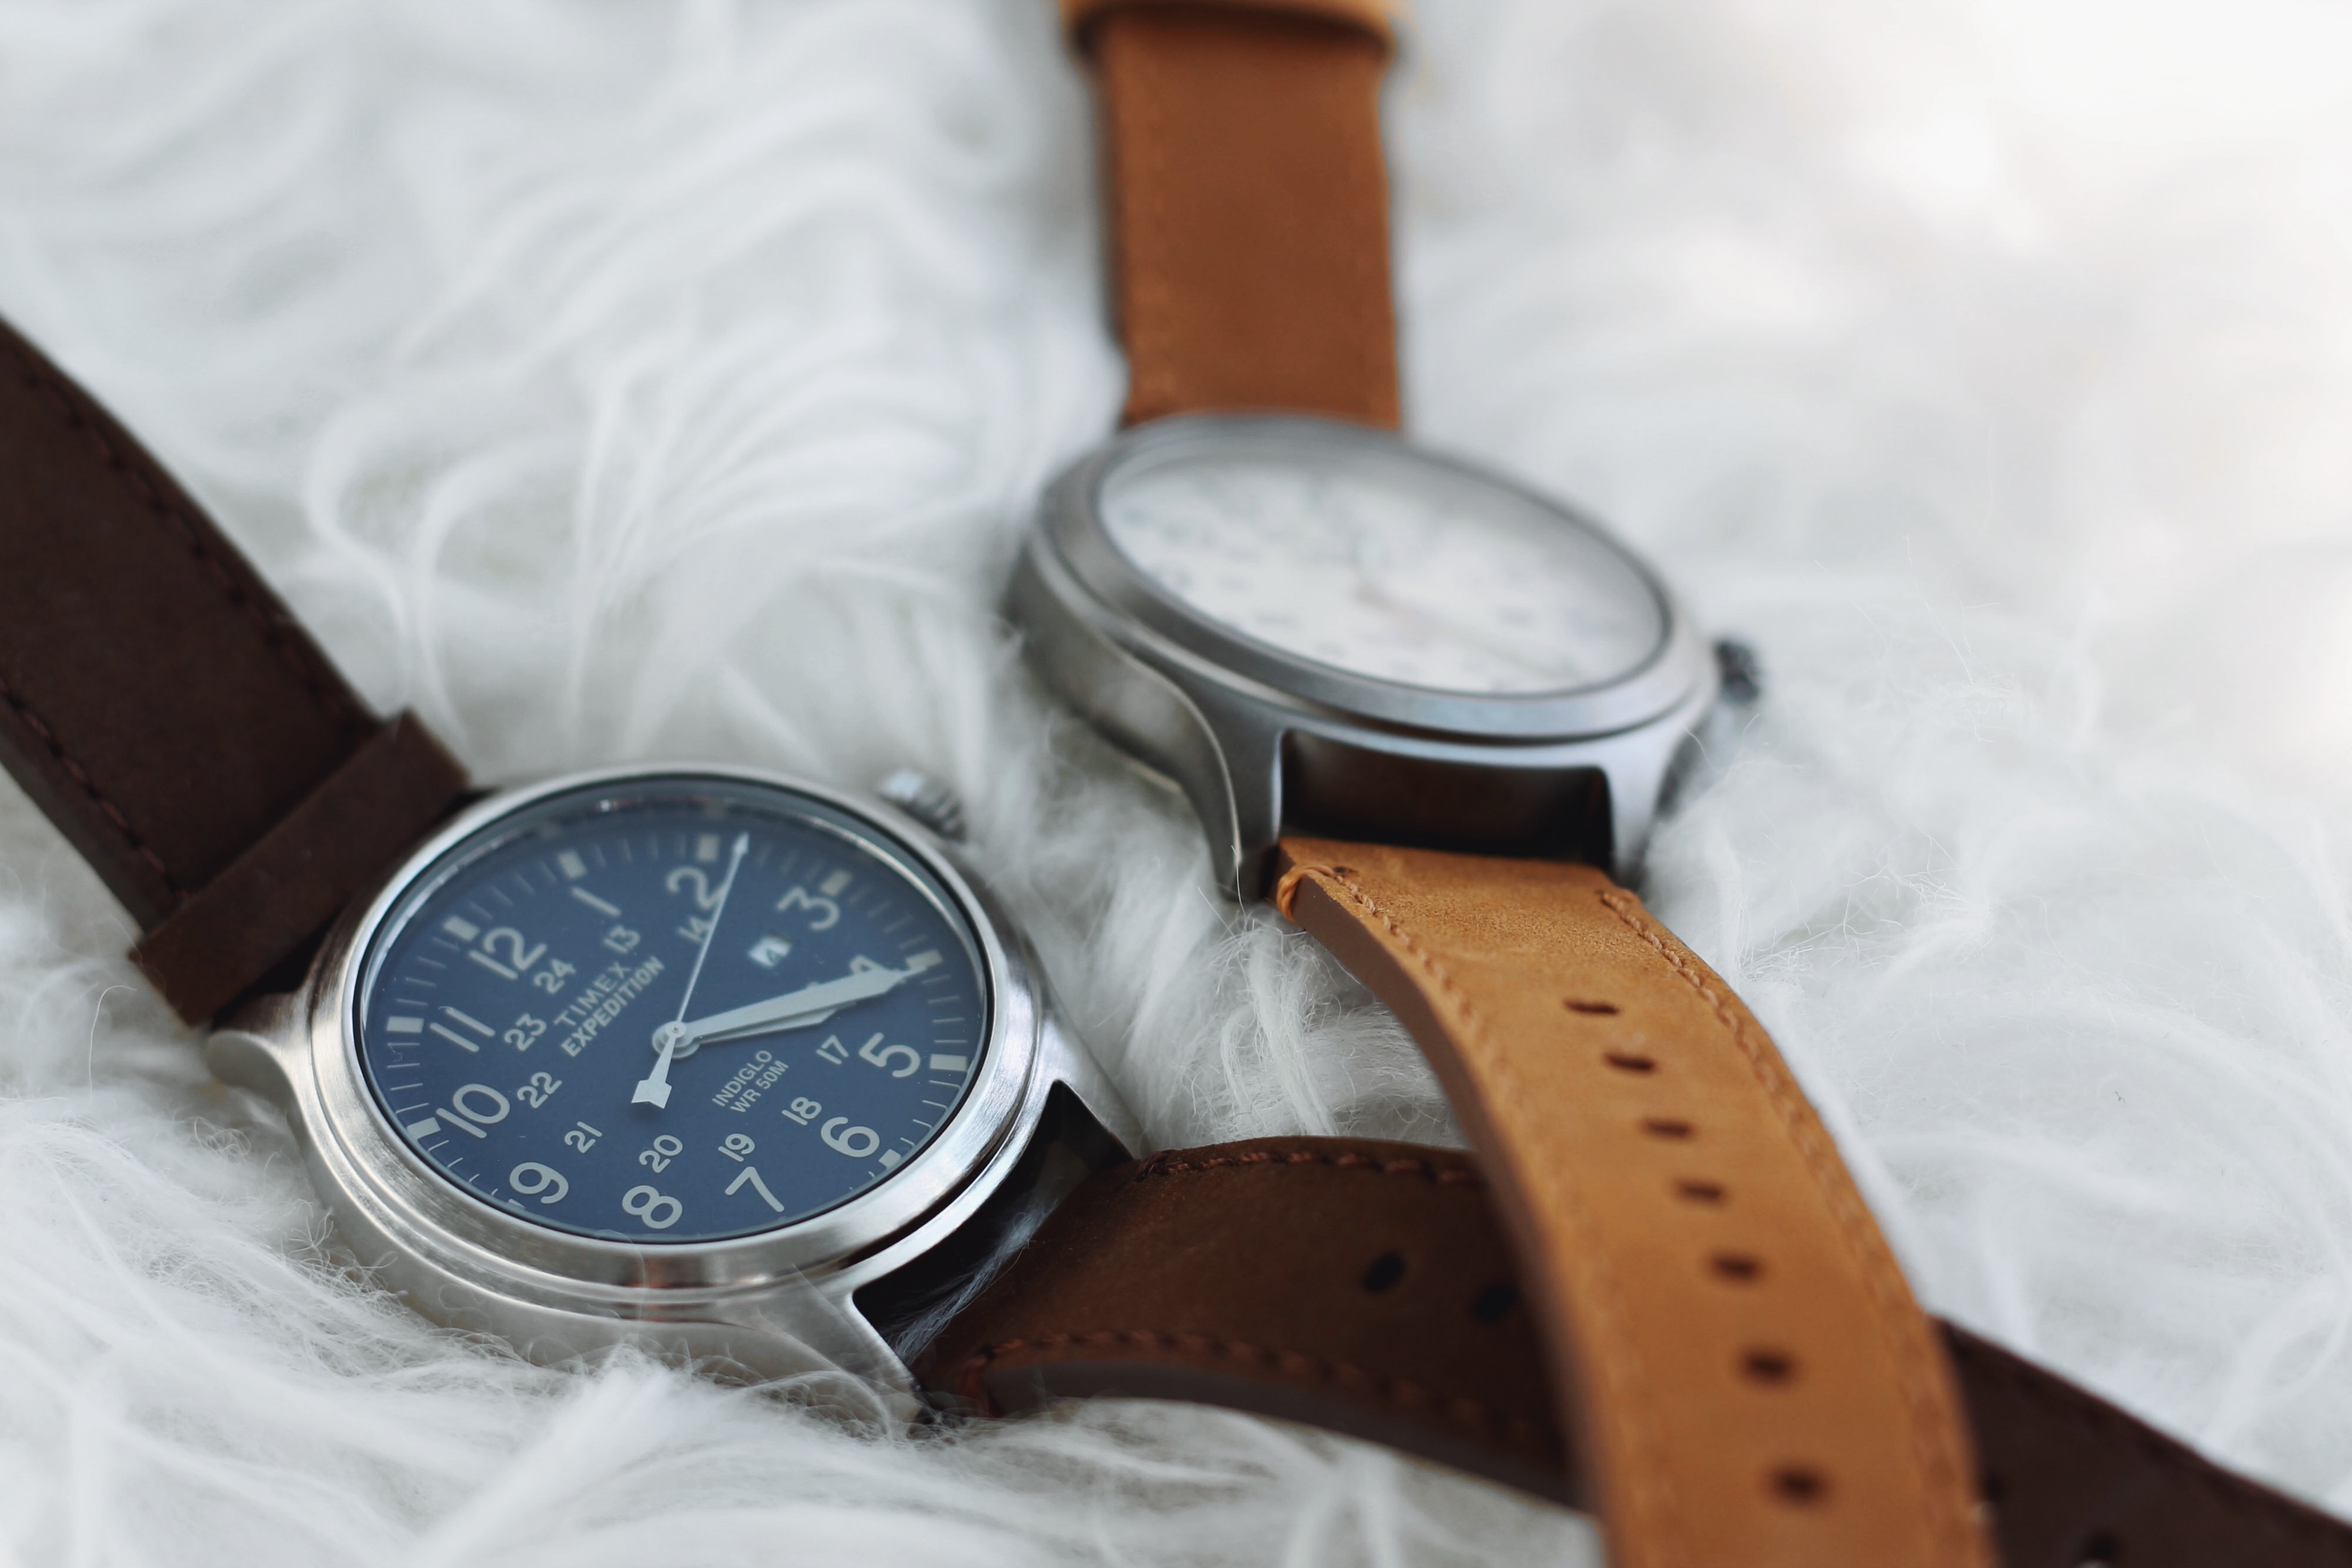 Timex Scout Watch available at Best Buy Canada